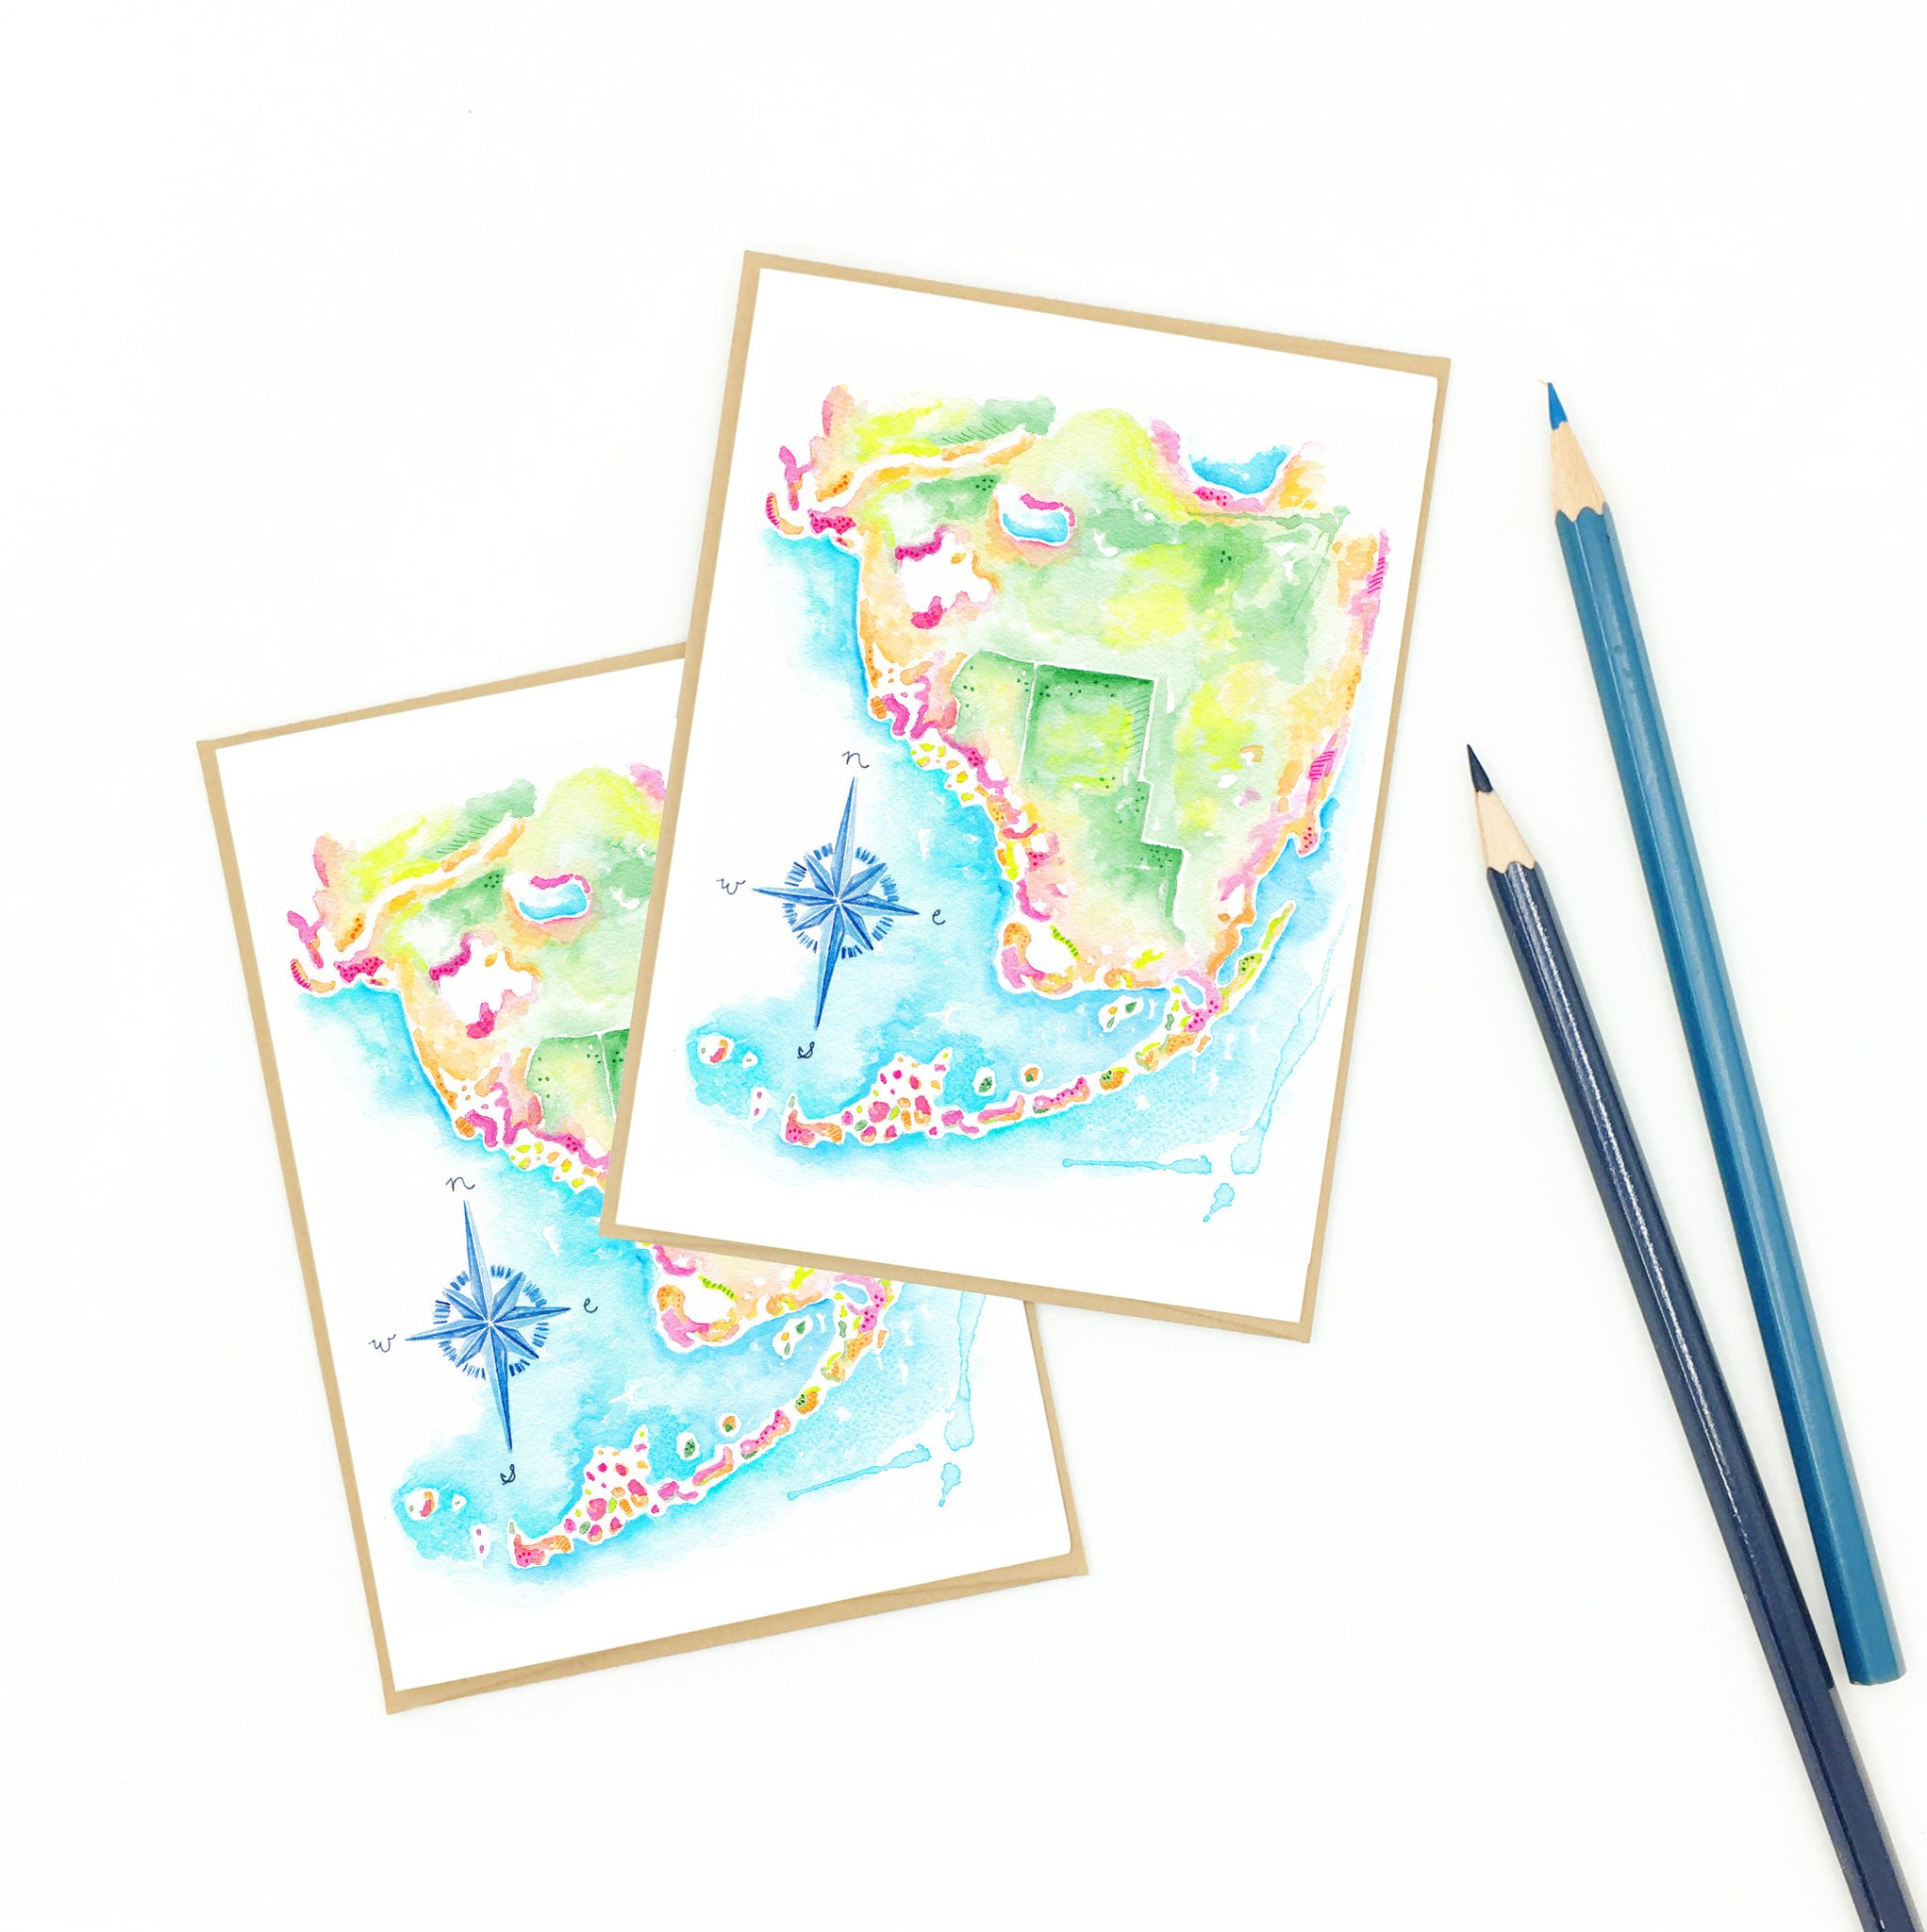 Florida Keys Map Artwork Boxed Gift Set of Notecards - Eight (8)